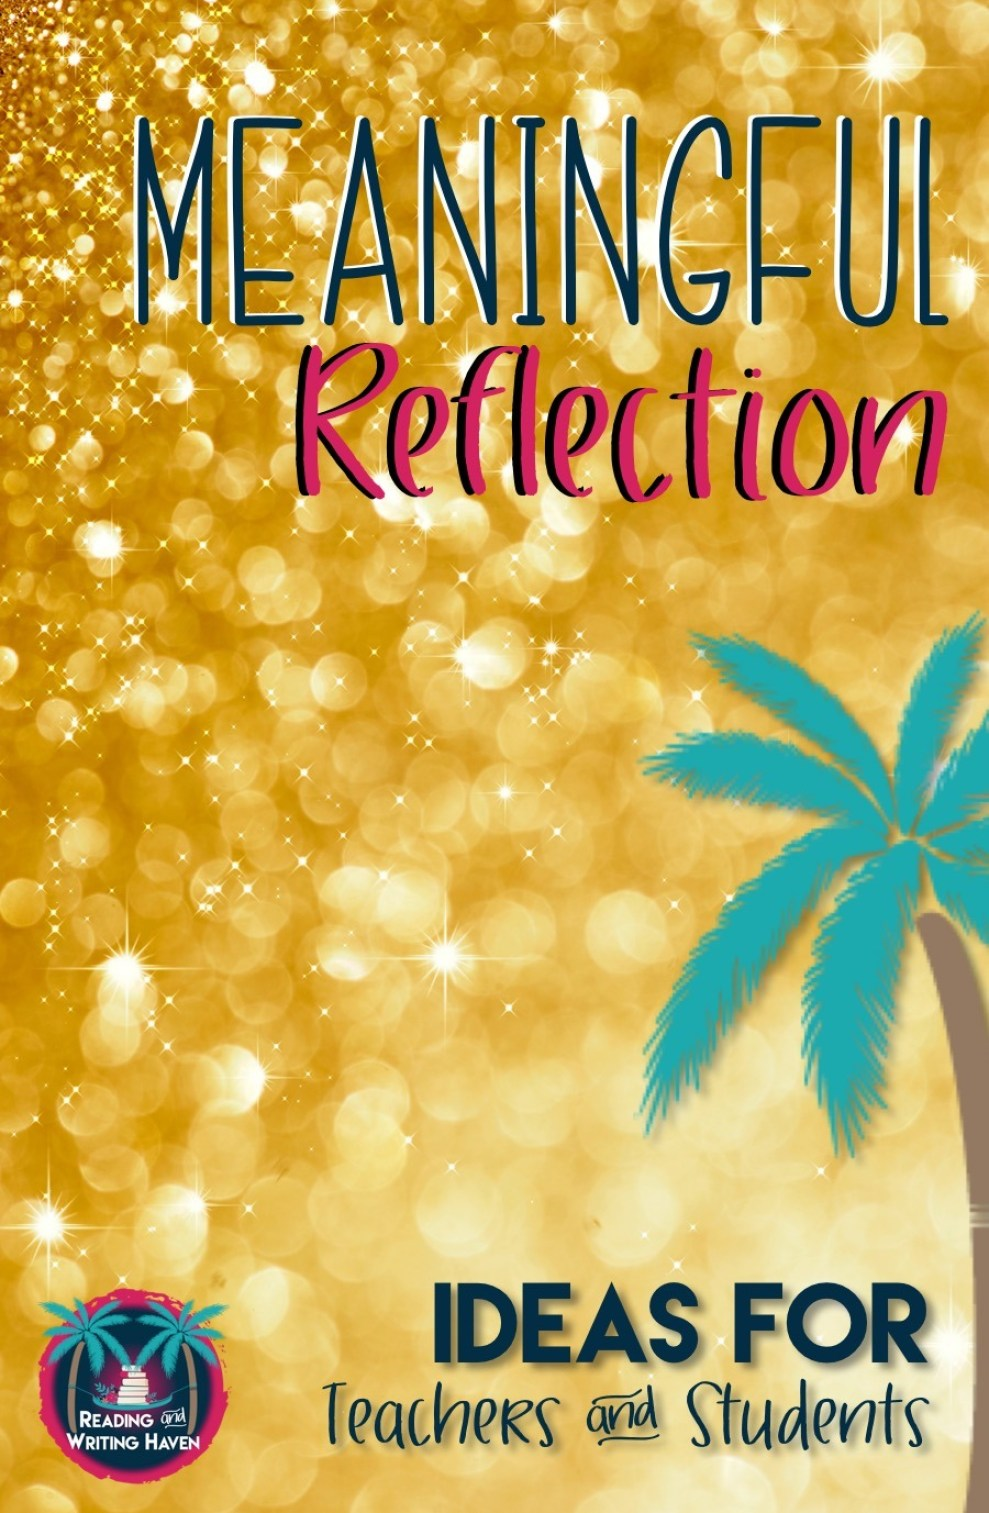 Read about different ways you can make reflection meaningful before beginning a new semester. Several teachers share best practice approaches to goal setting and starting fresh. Article from Reading and Writing Haven.